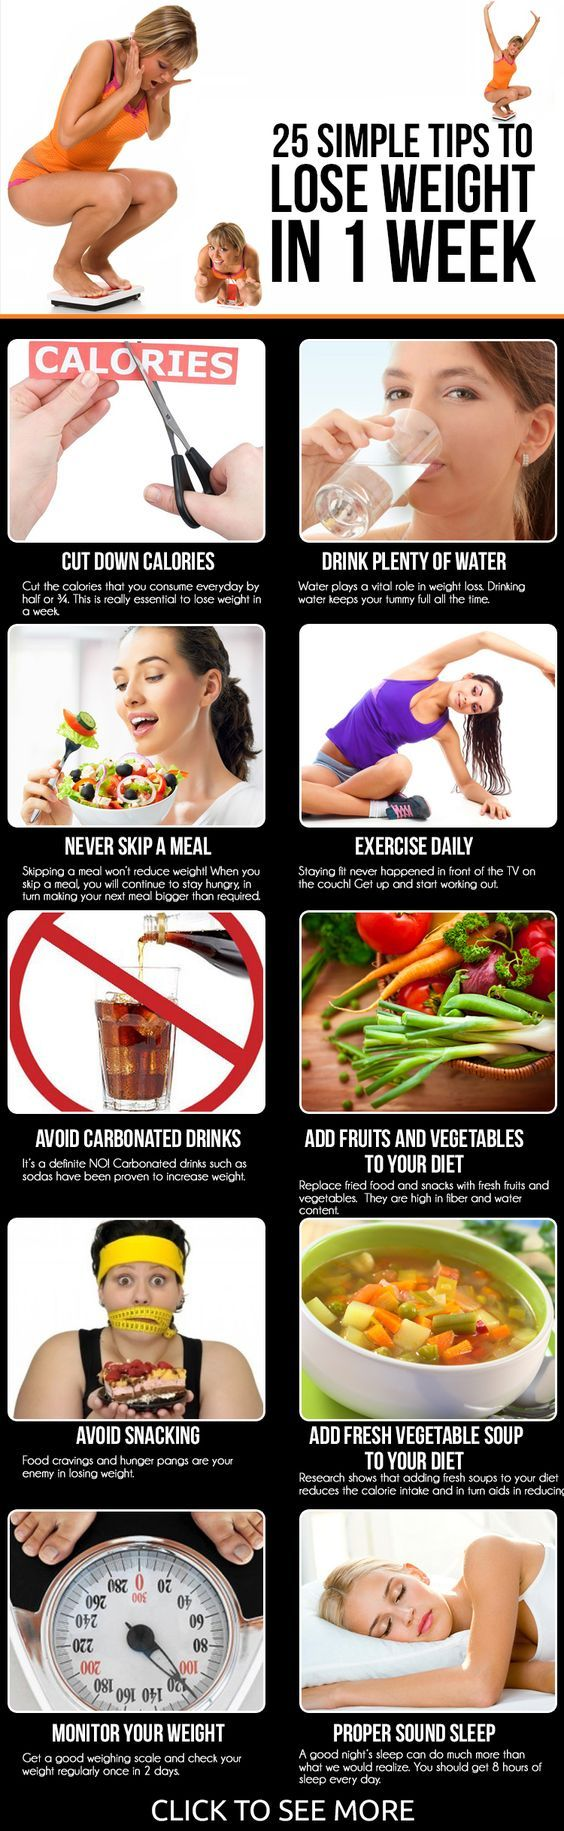 how to lose weight in a week 23 simple tips effective weight